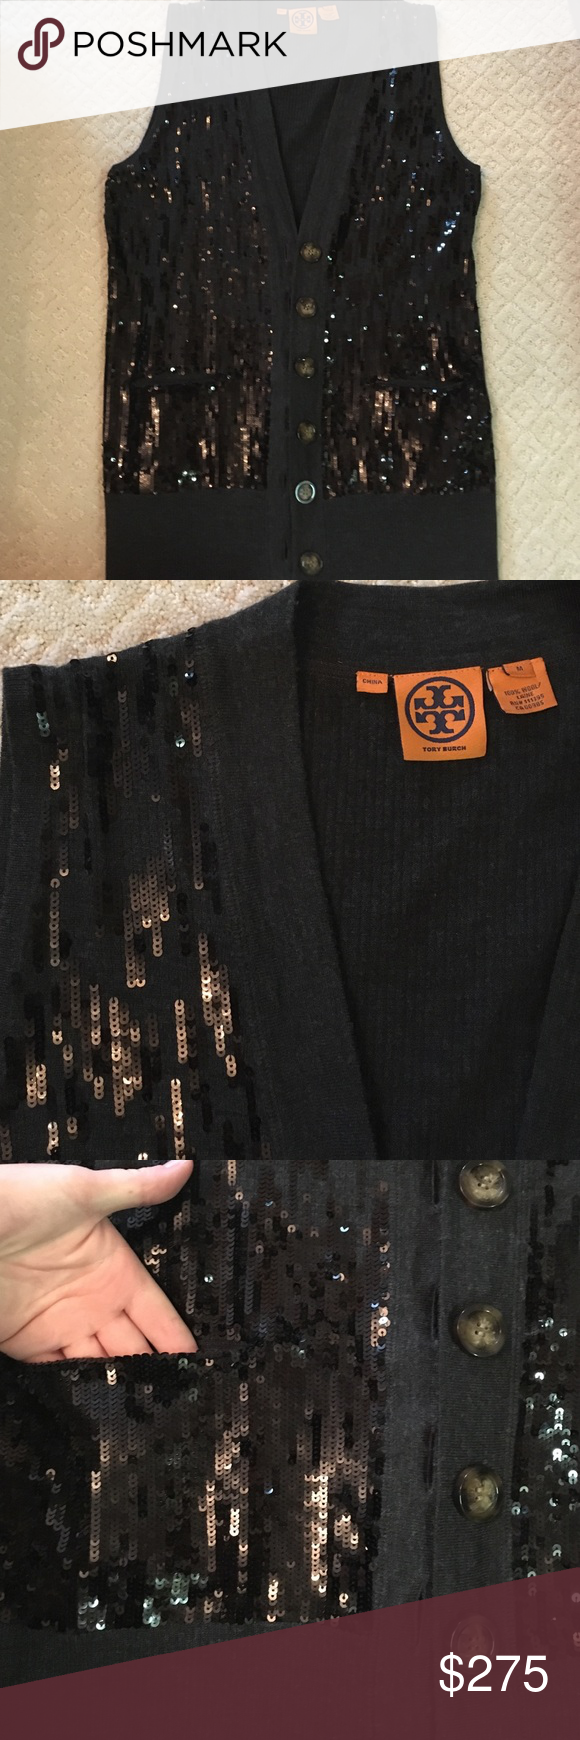 Tory Burch vest Black sparkle vest by Tory Burch. NWOT. Never worn. Functional pockets. 100 % wool. Size M. Sequins are black, fabric is dark grey. Tory Burch Jackets & Coats Vests